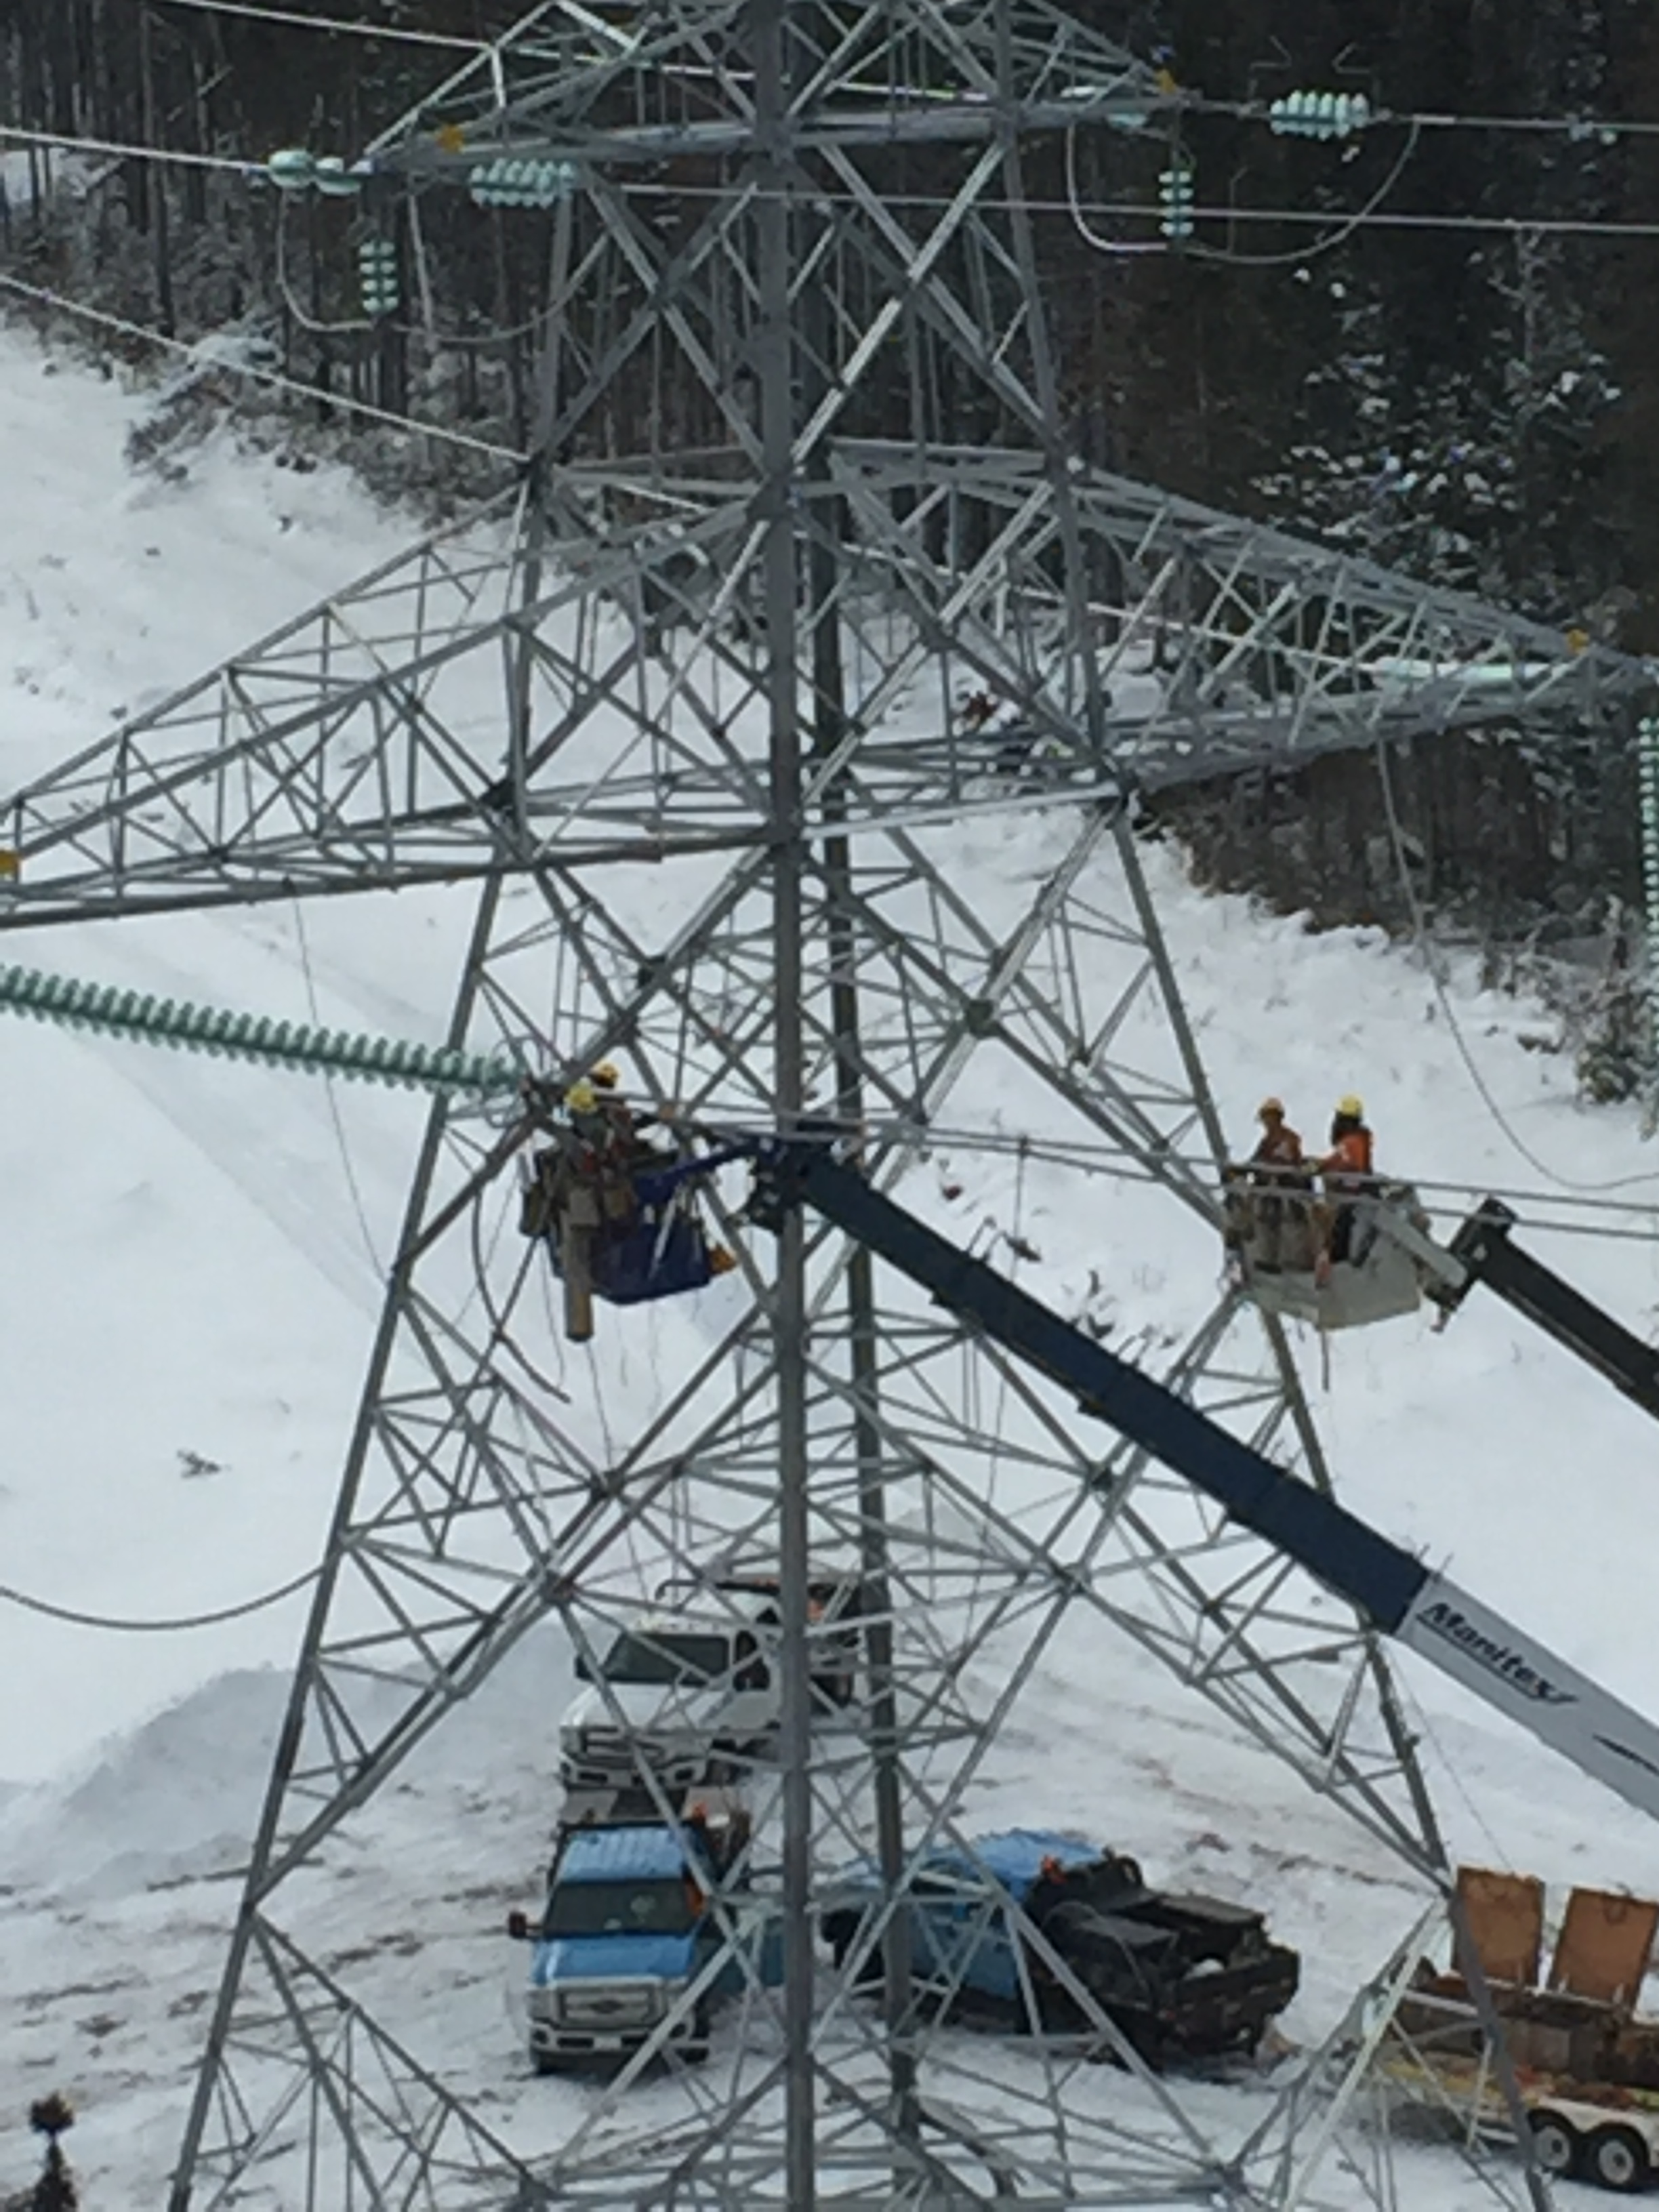 Crews working on the 1,100 km HVdc Labrador-Island Link in Labrador